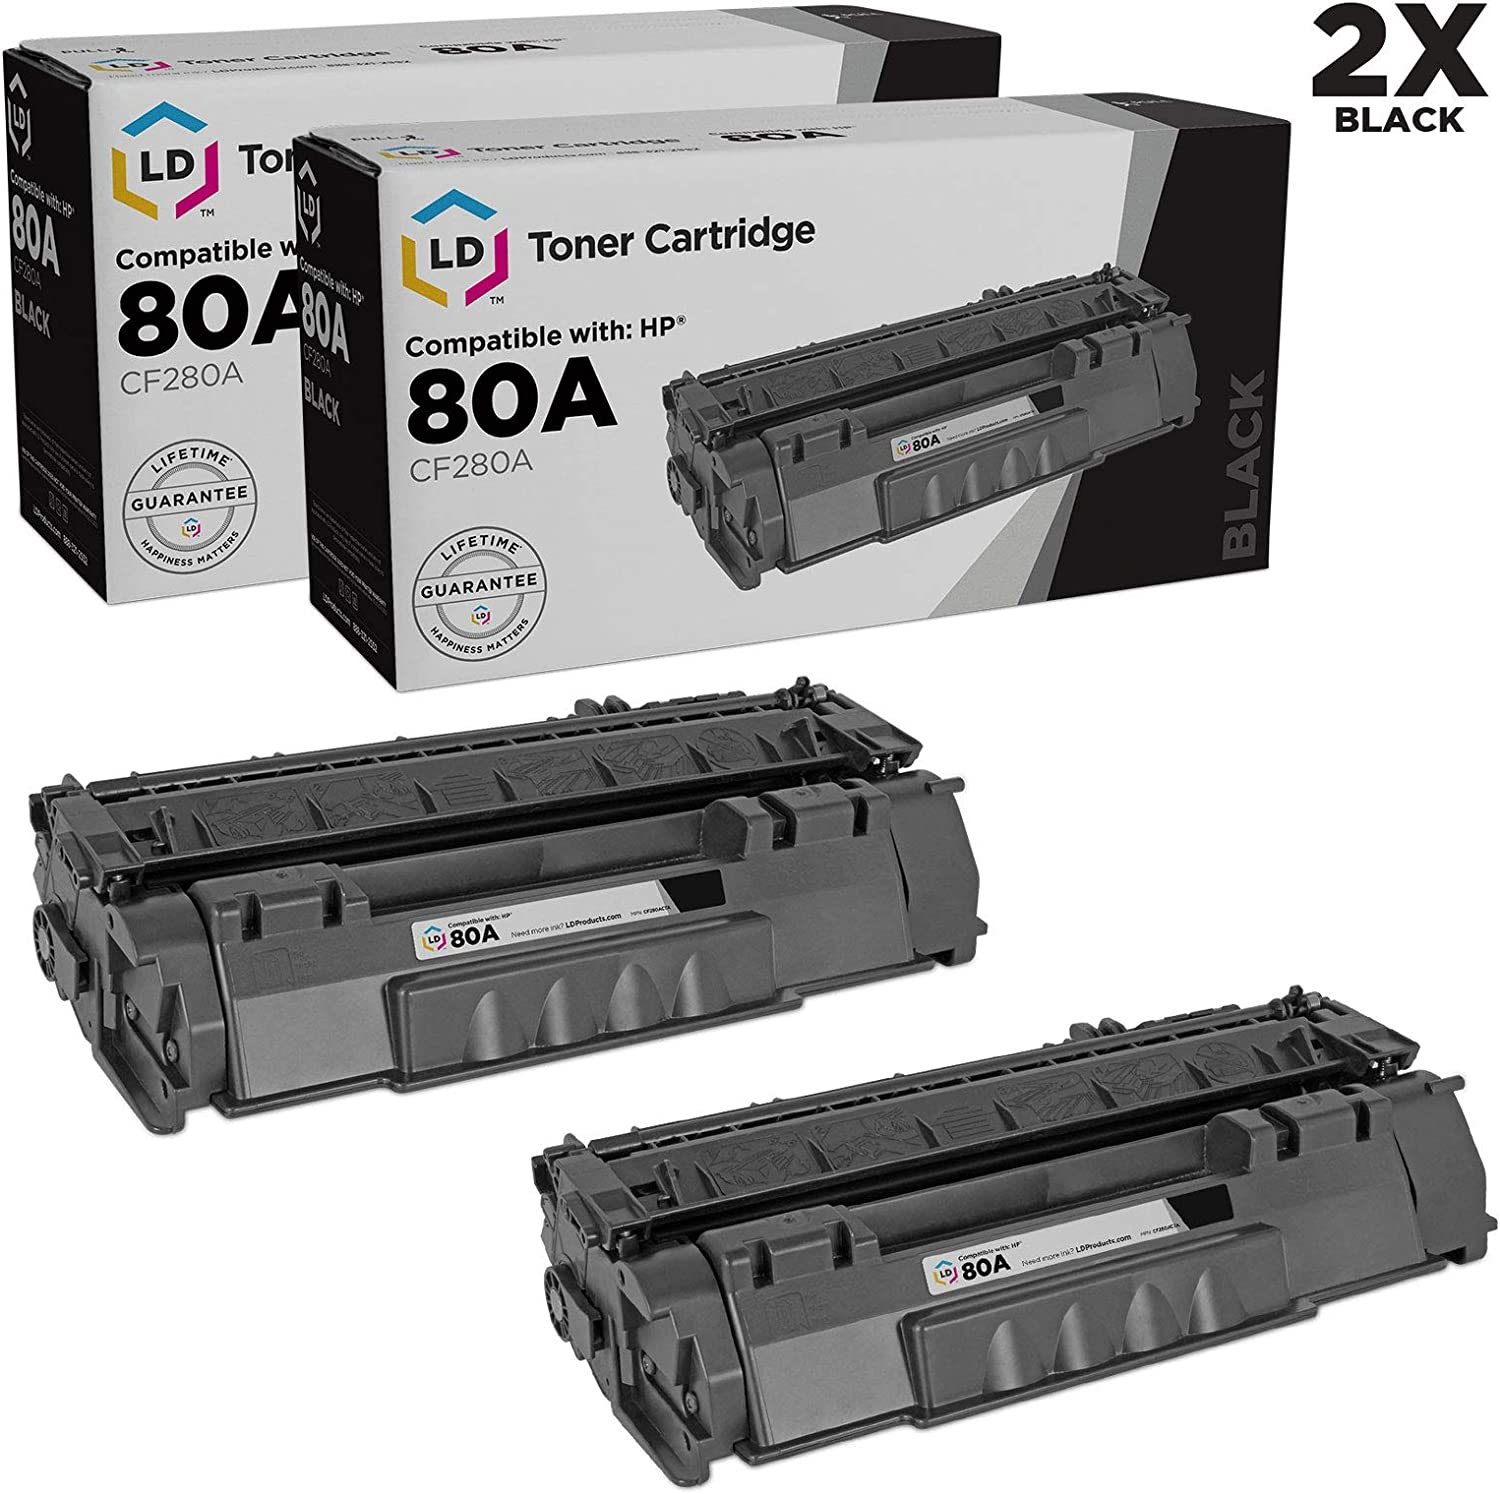 LD Compatible Toner Cartridge Replacements for HP 80A CF280A (Black, 2-Pack)